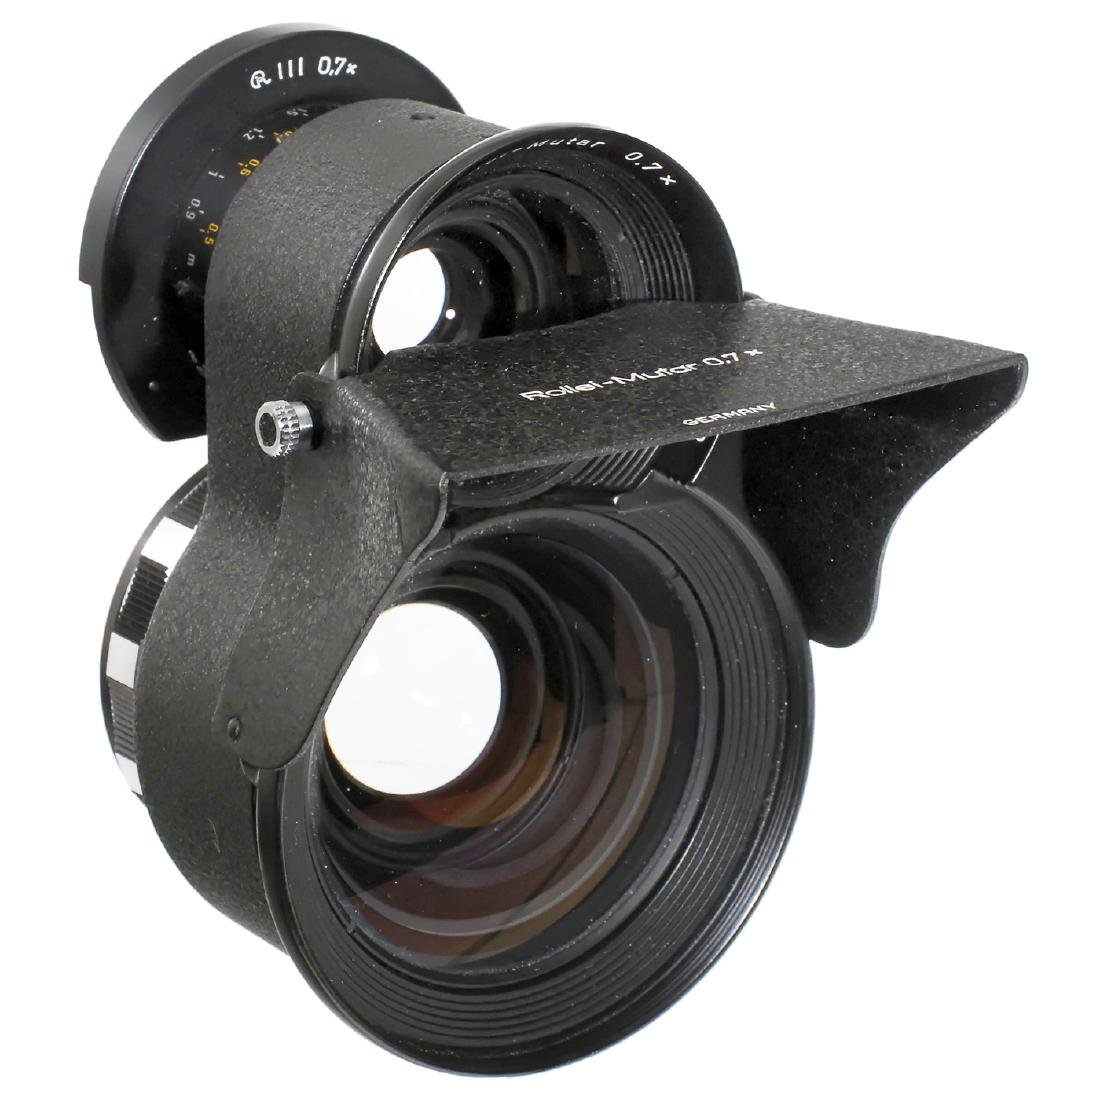 Tele and Wide-Angle Mutar for Rolleiflex TLR